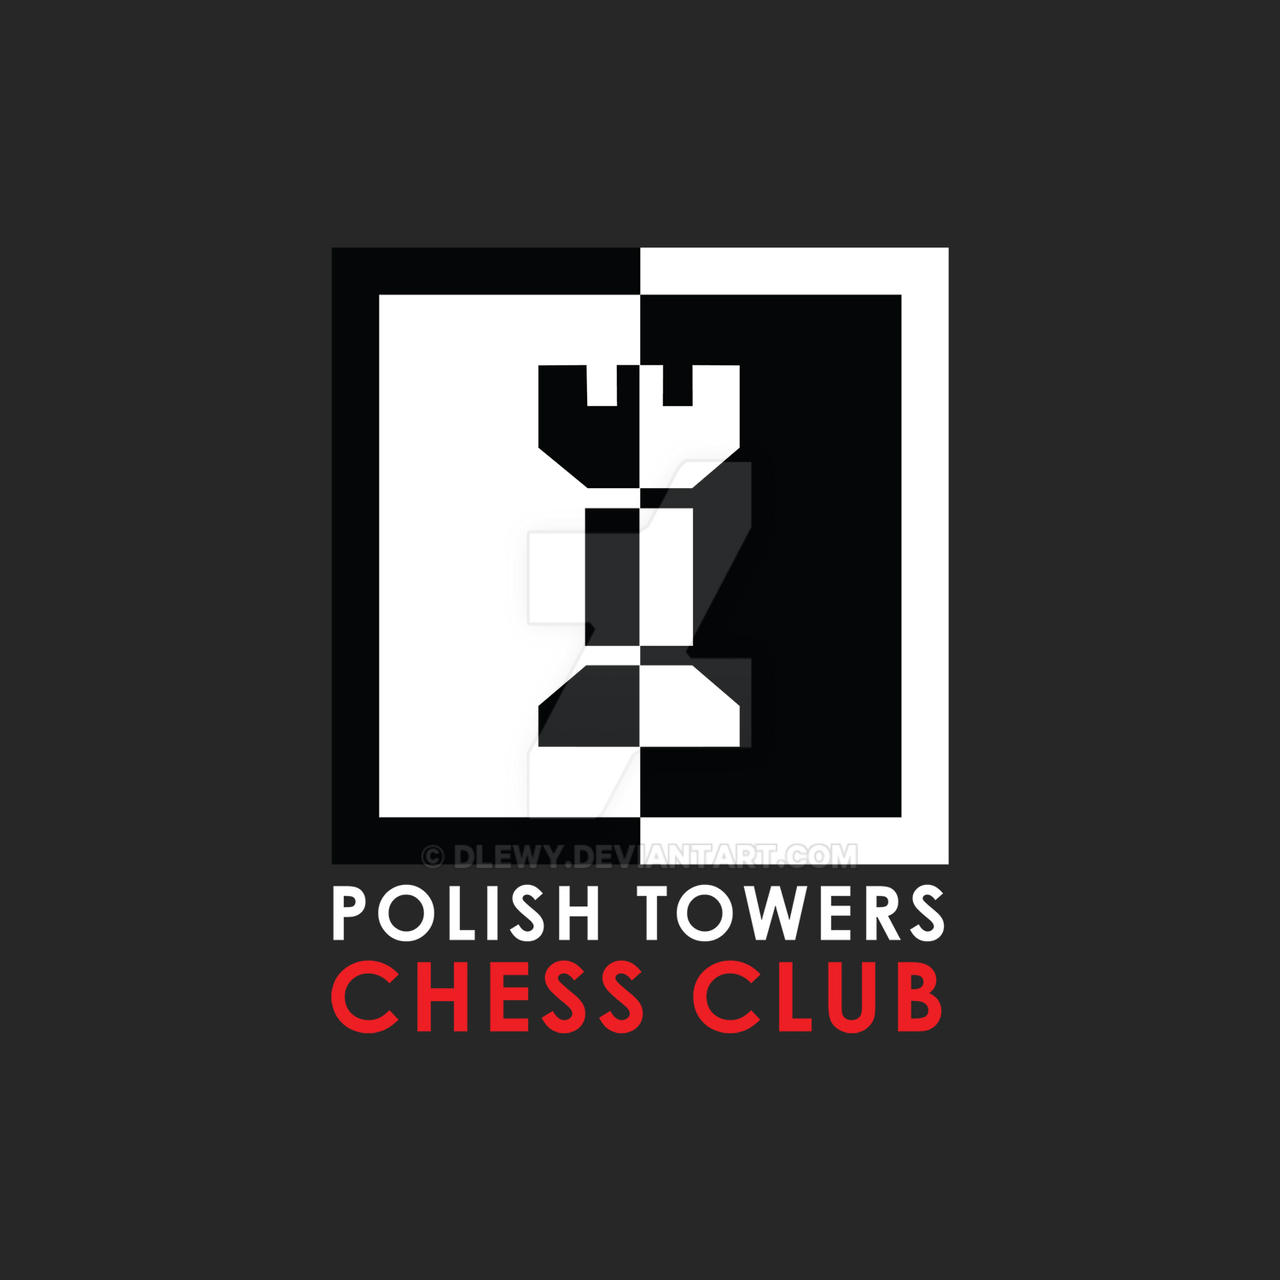 Polish Towers Chess Club Logo by dlewy on DeviantArt